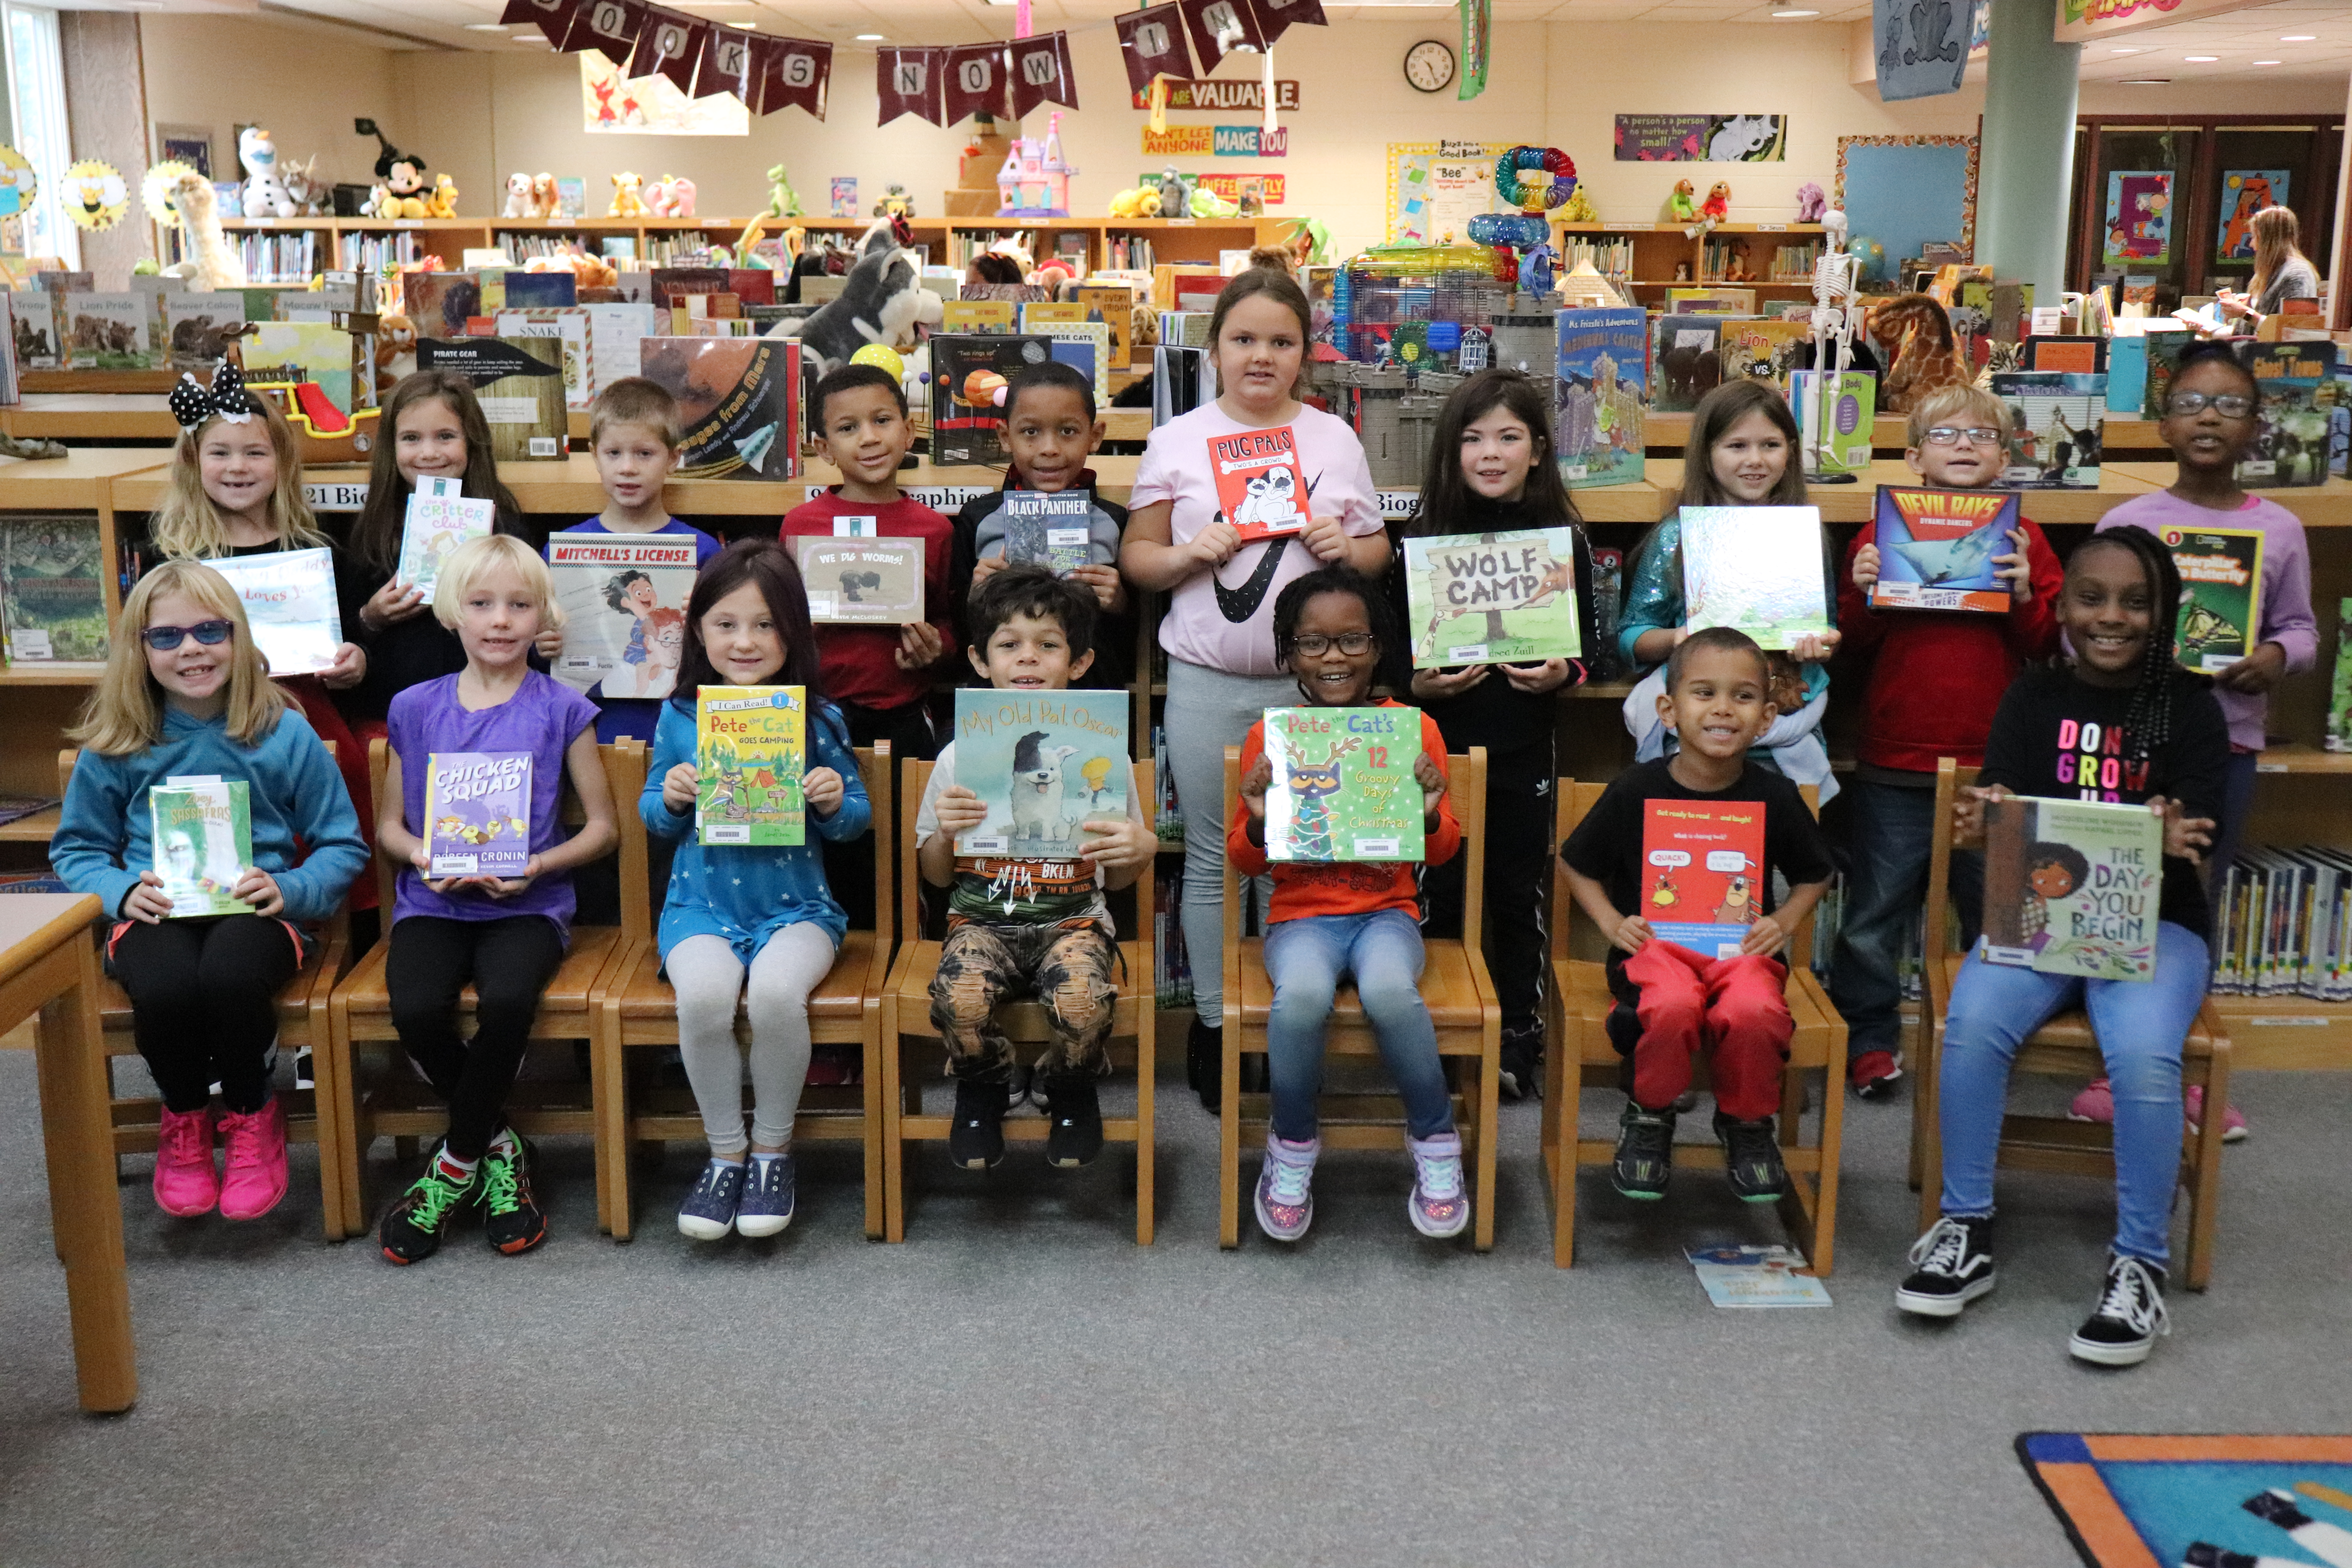 WASDEF Awards 122 Books to Summer Readers, Elementary Libraries